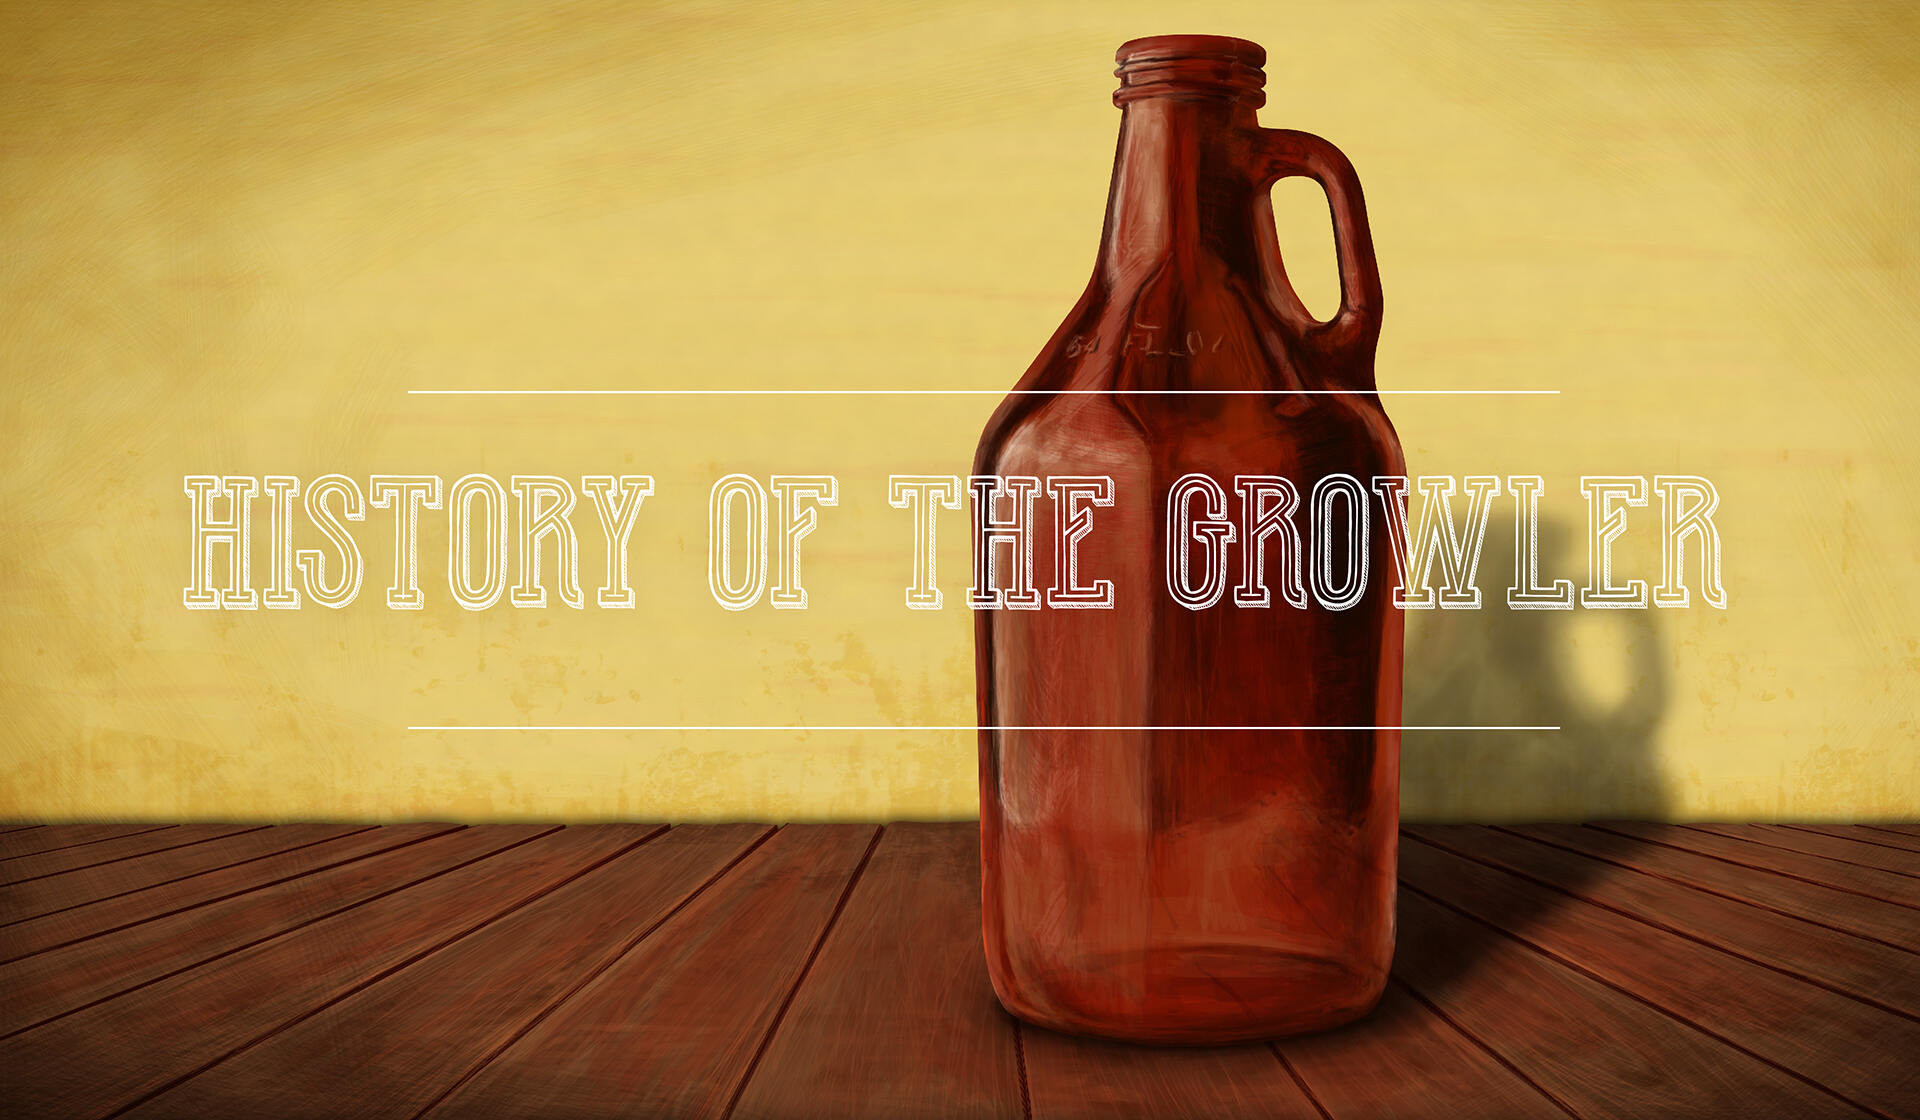 History of the Growler